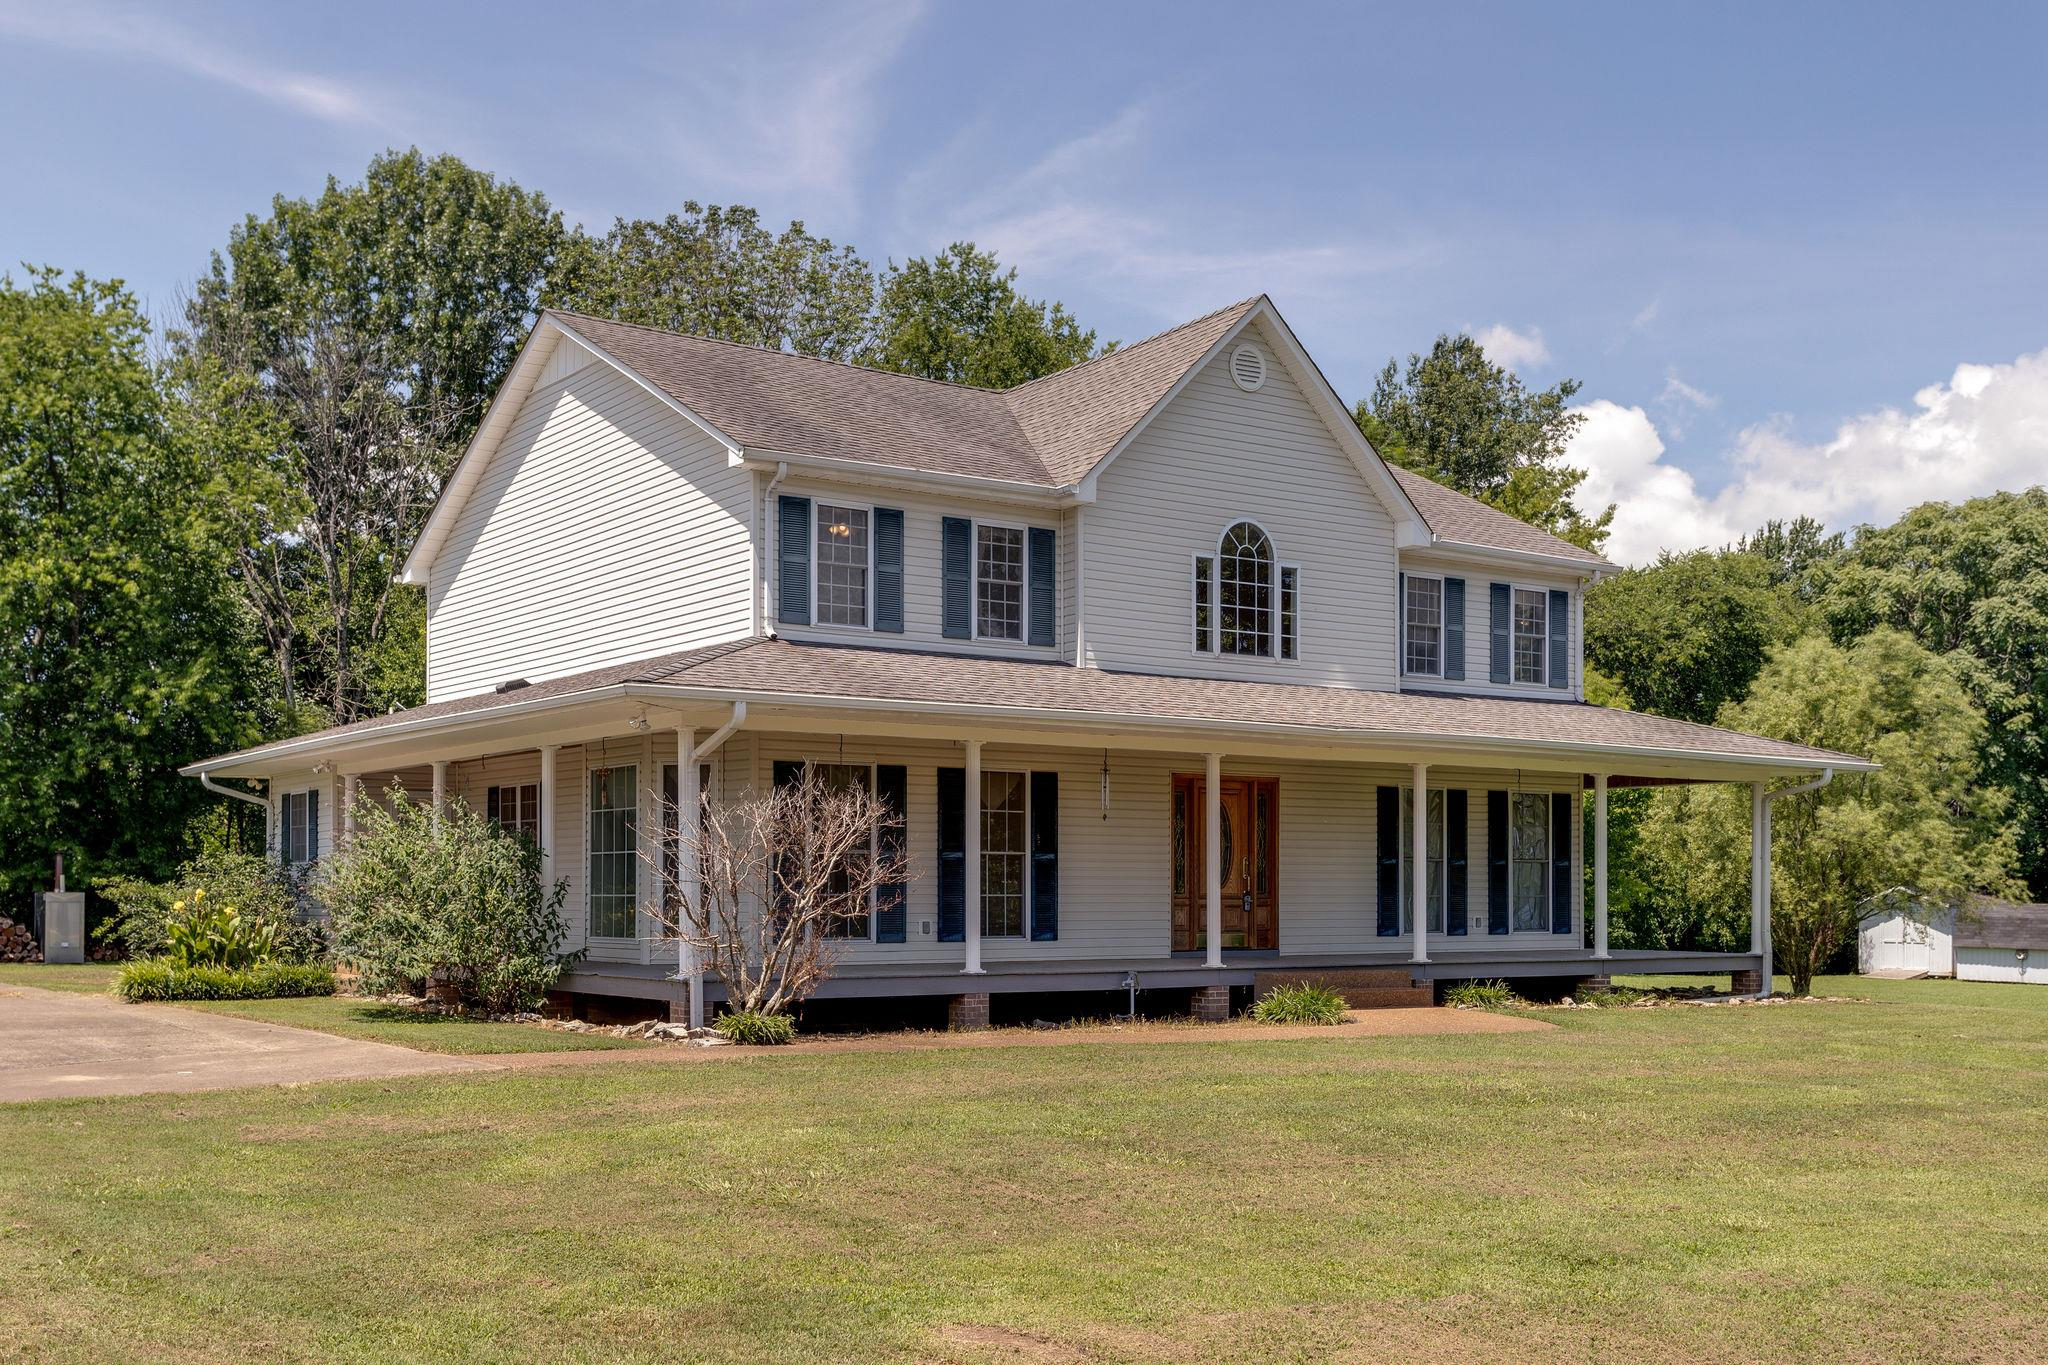 1909 Hunters Run Rd, Lewisburg, TN 37091 - Lewisburg, TN real estate listing